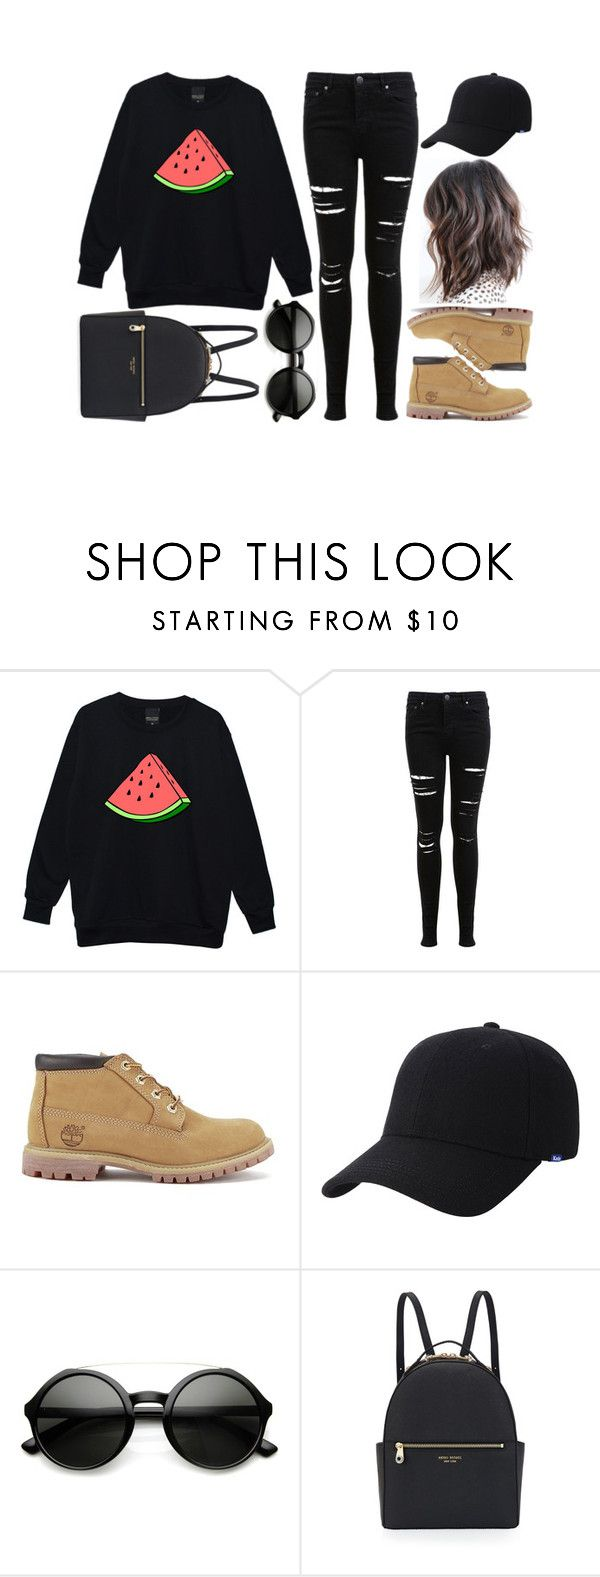 """Untitled #776"" by kendalcanswim ❤ liked on Polyvore featuring Miss Selfridge, Timberland, Keds and Henri Bendel"